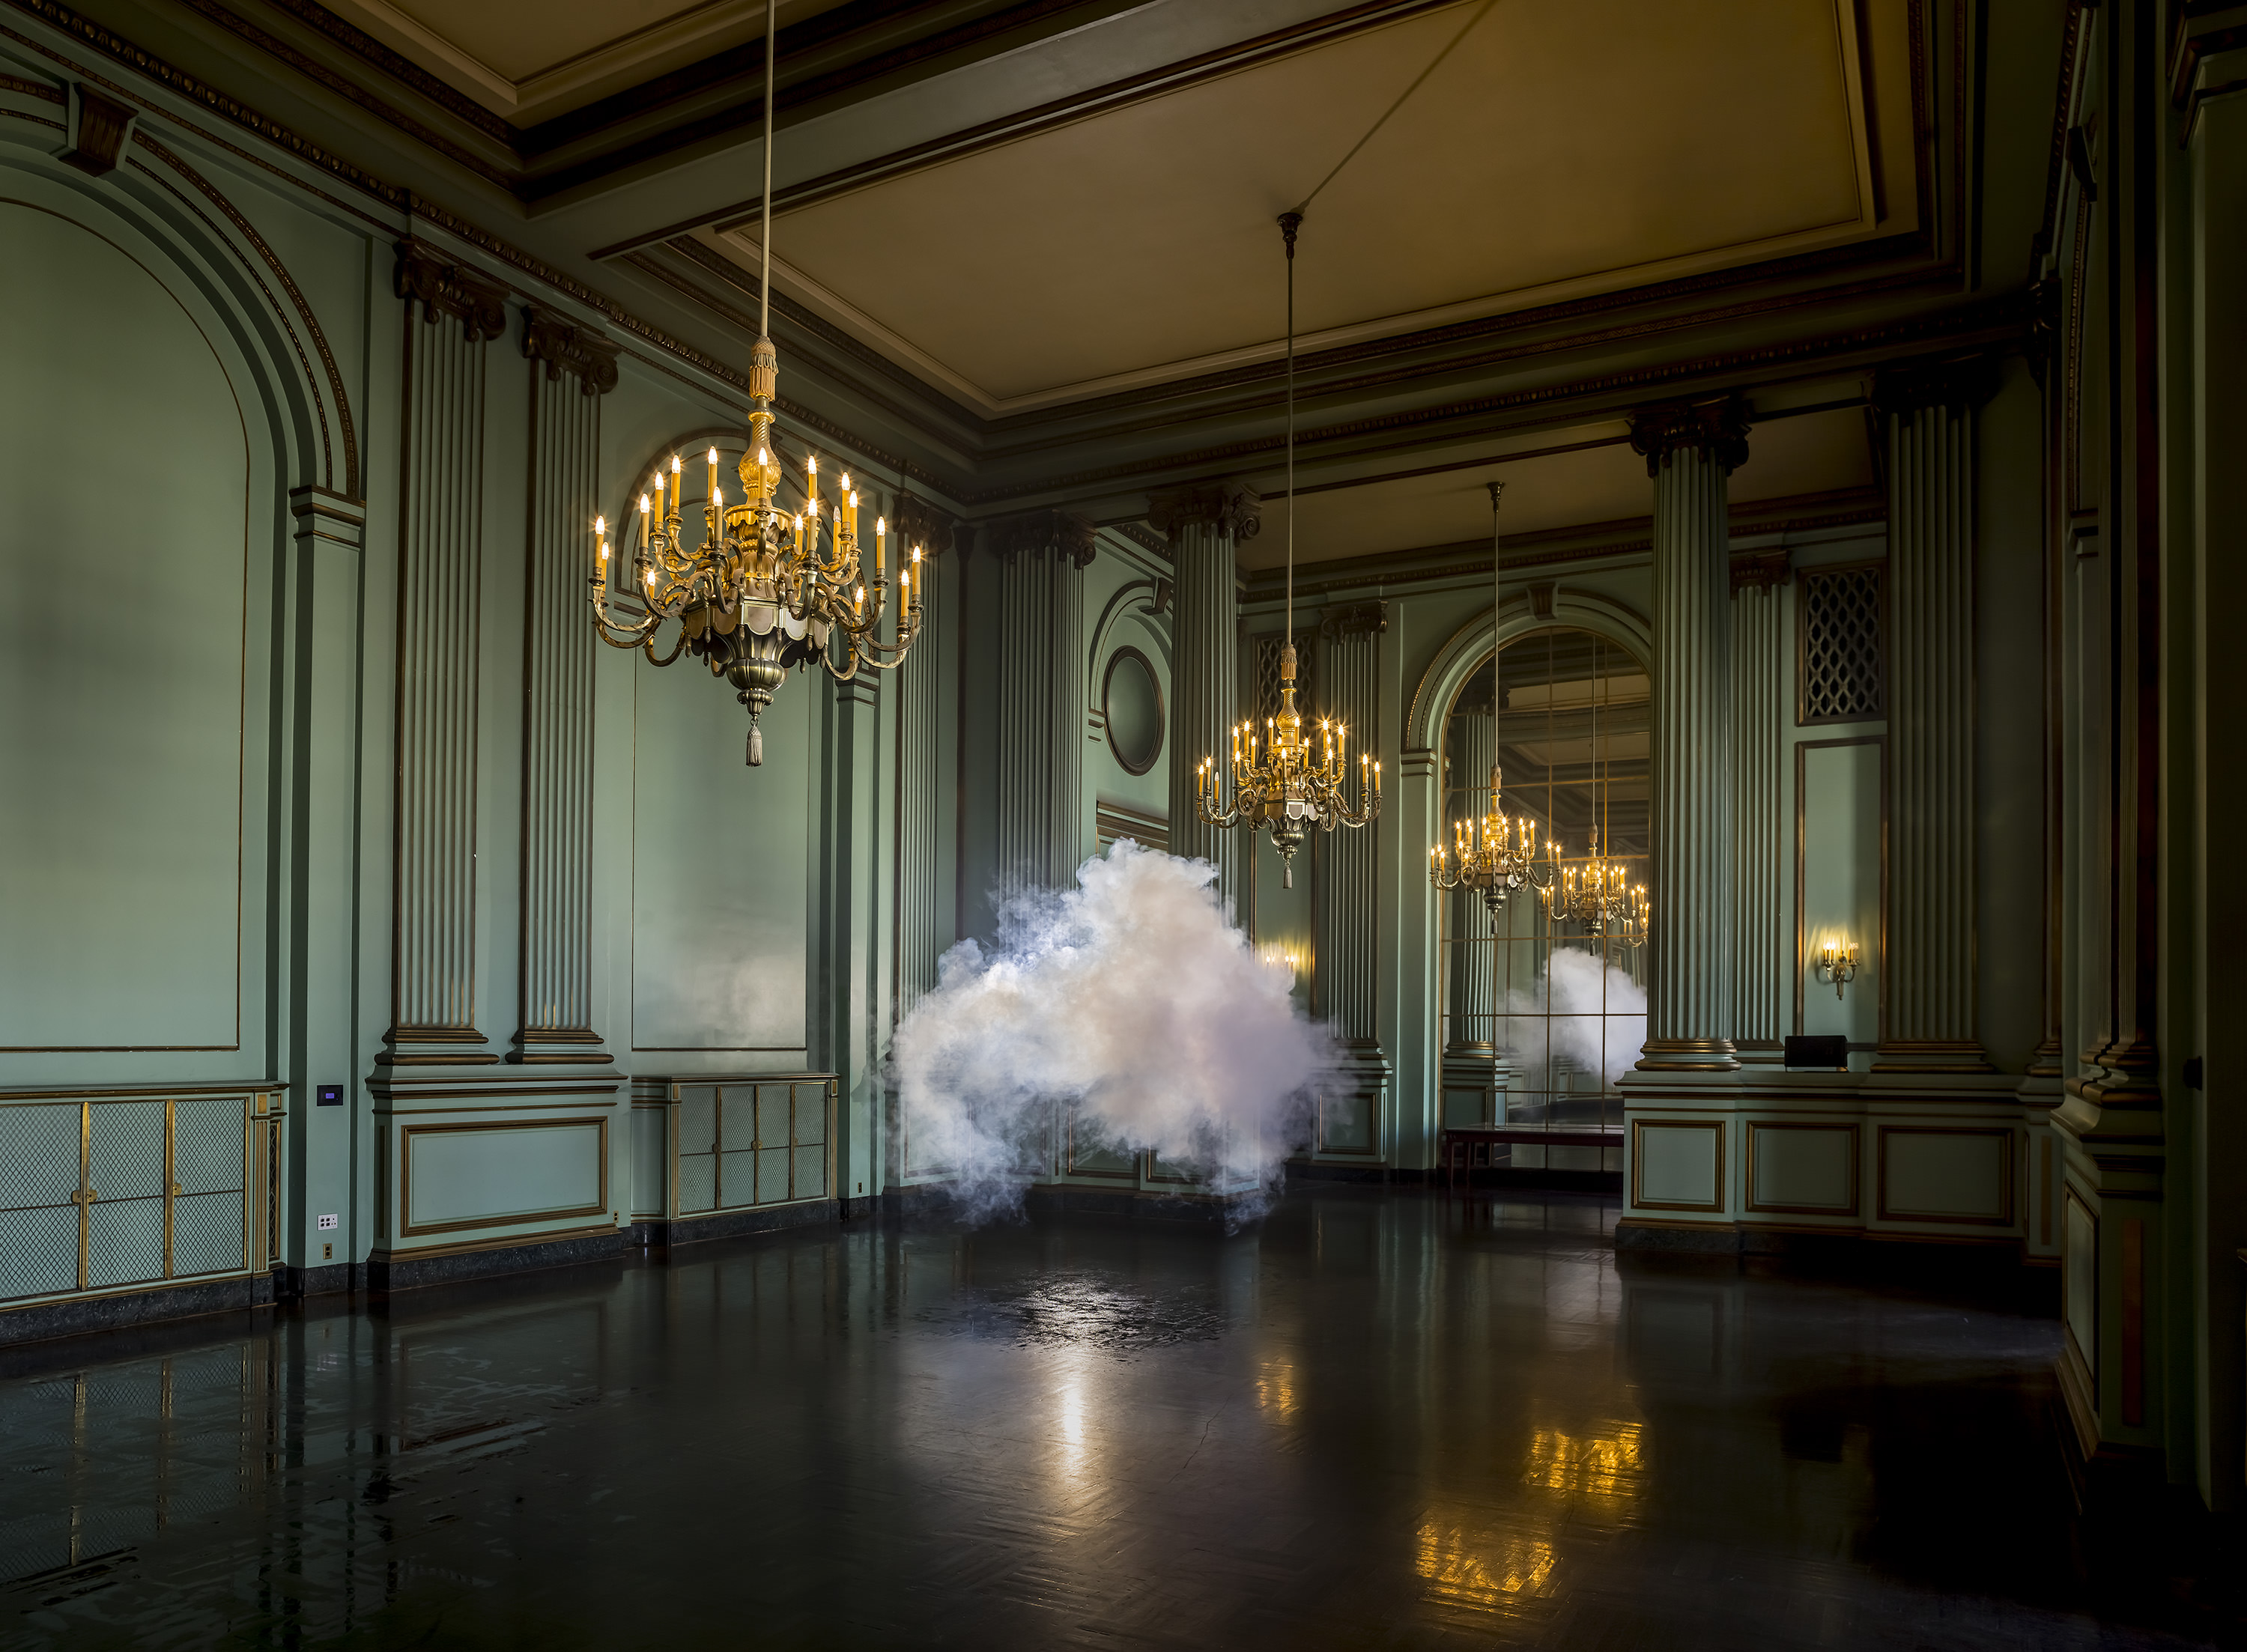 Berndnaut Smilde  Nimbus Green Room, 2013  digital C-type print on aluminium 125 x 170 cm